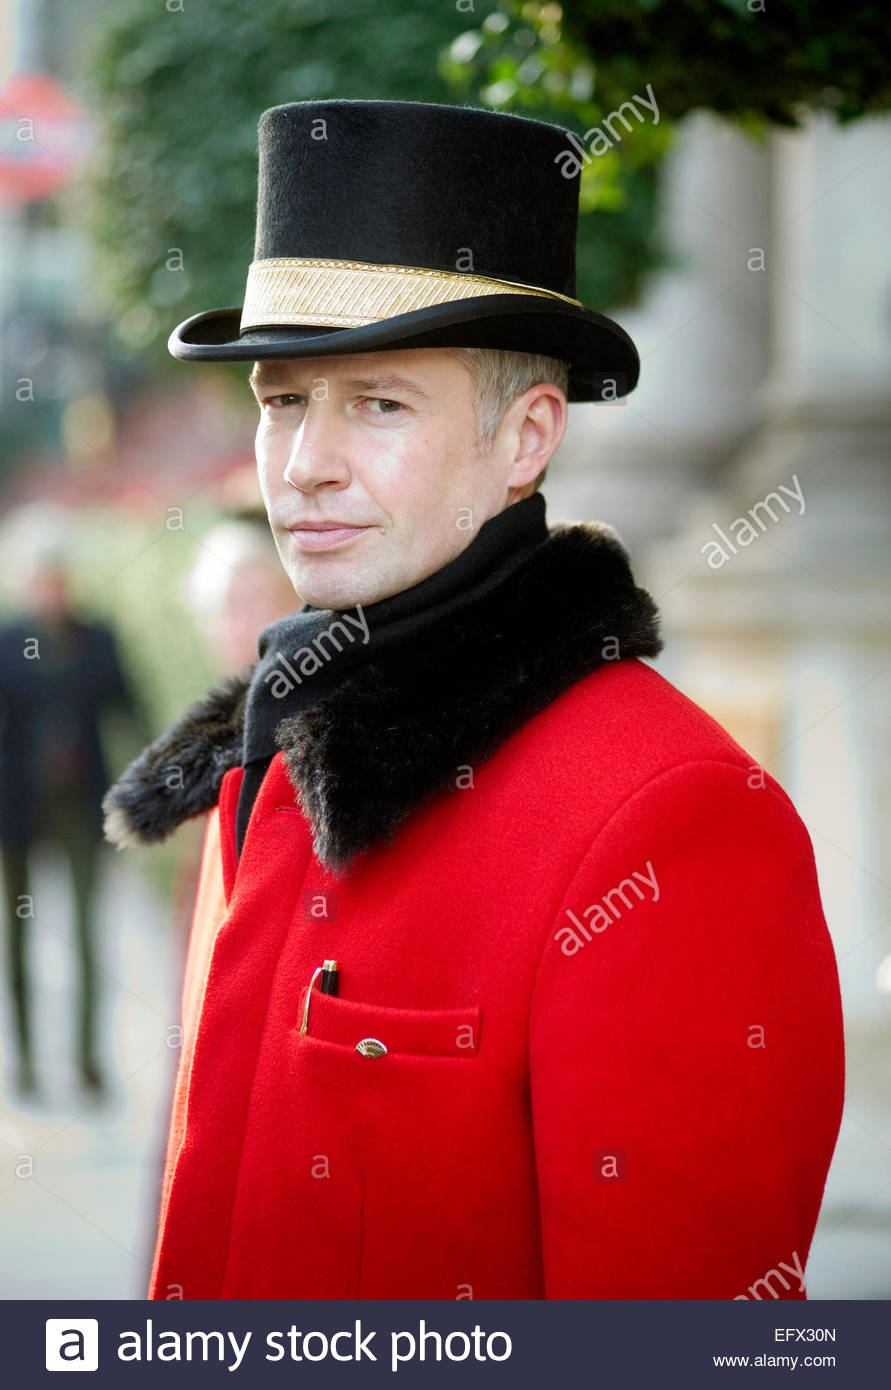 Knightsbridge Man Doorman United Kingdom Great Britain British UK Central London People Person Outdoor Exterior -  sc 1 st  Alamy & Doorman wearing a top hat in front of the lobby of the Savoy Hotel ... pezcame.com